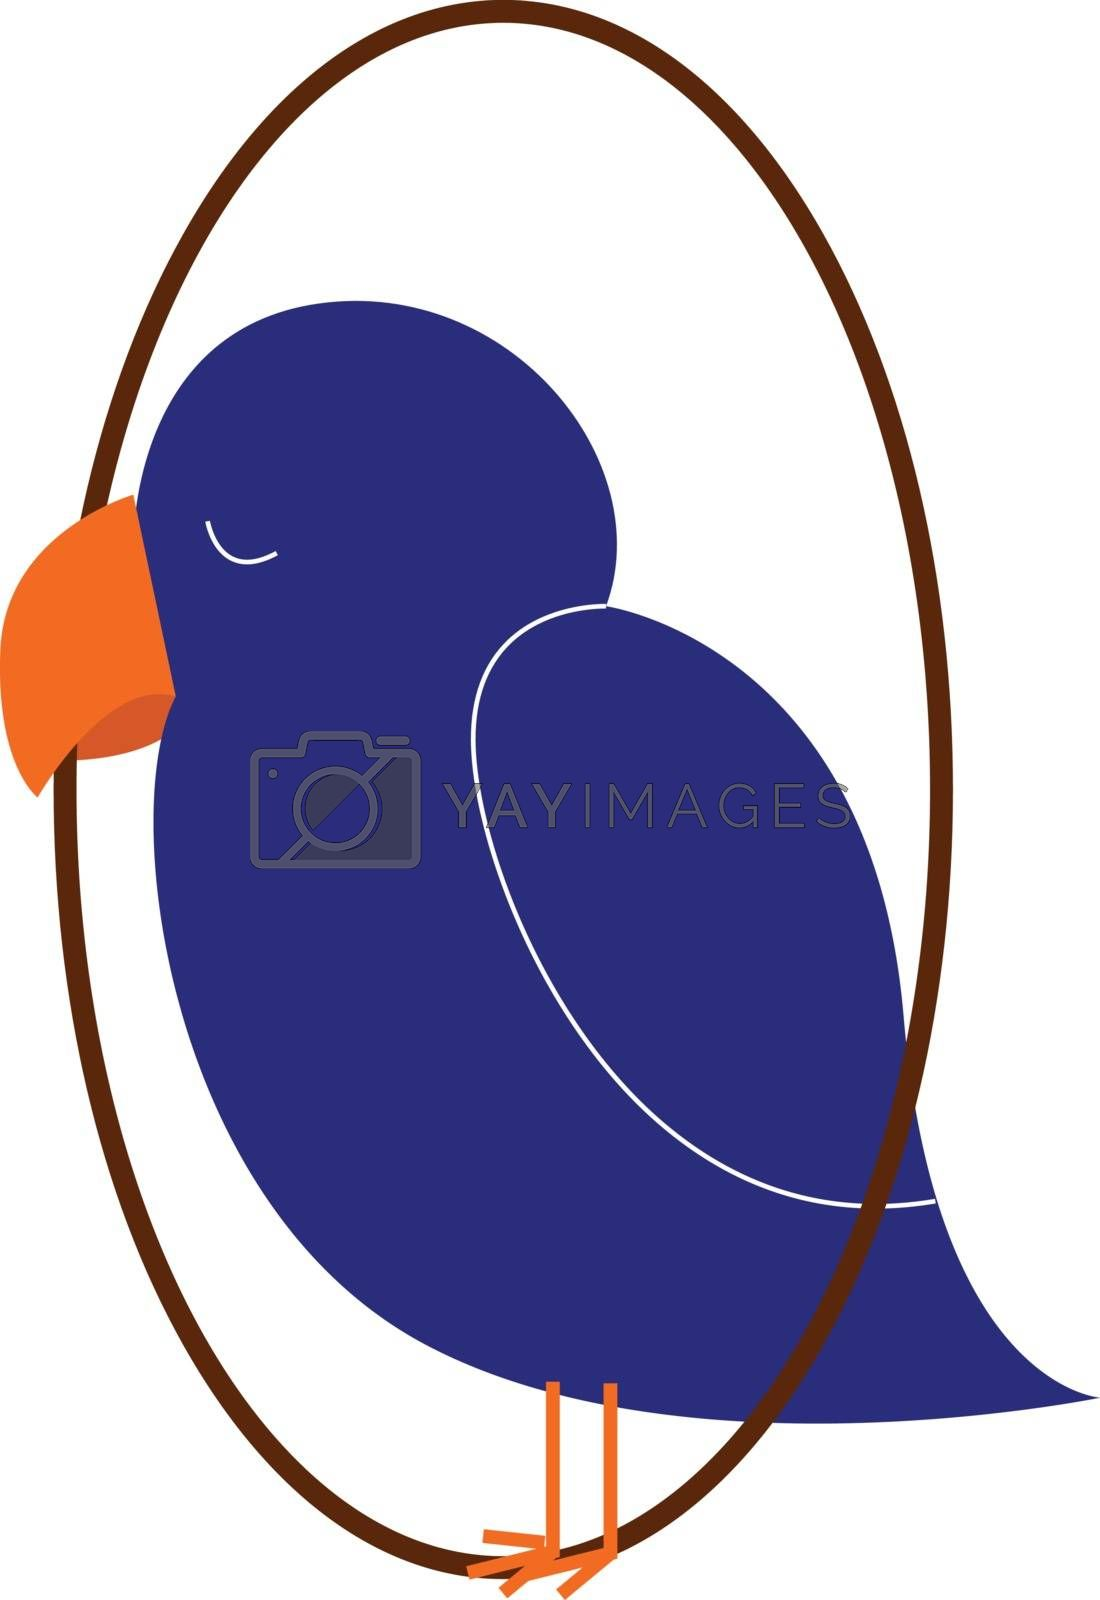 Royalty free image of Clipart of a blue-colored sleeping bird vector or color illustra by Morphart